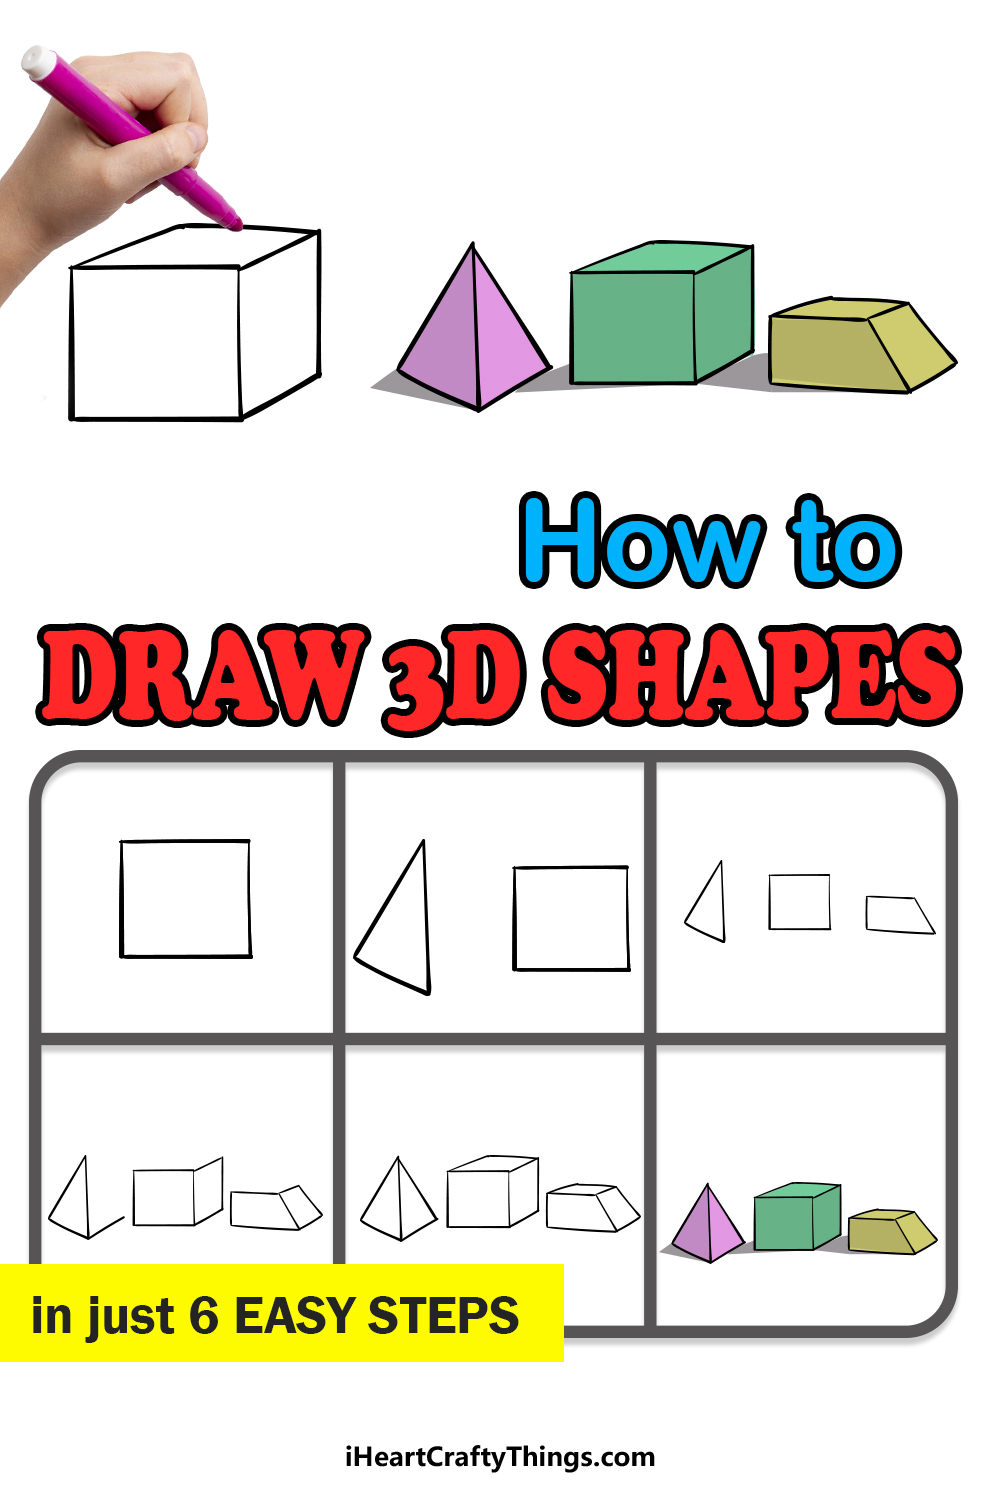 how to draw 3D shapes in 6 easy steps